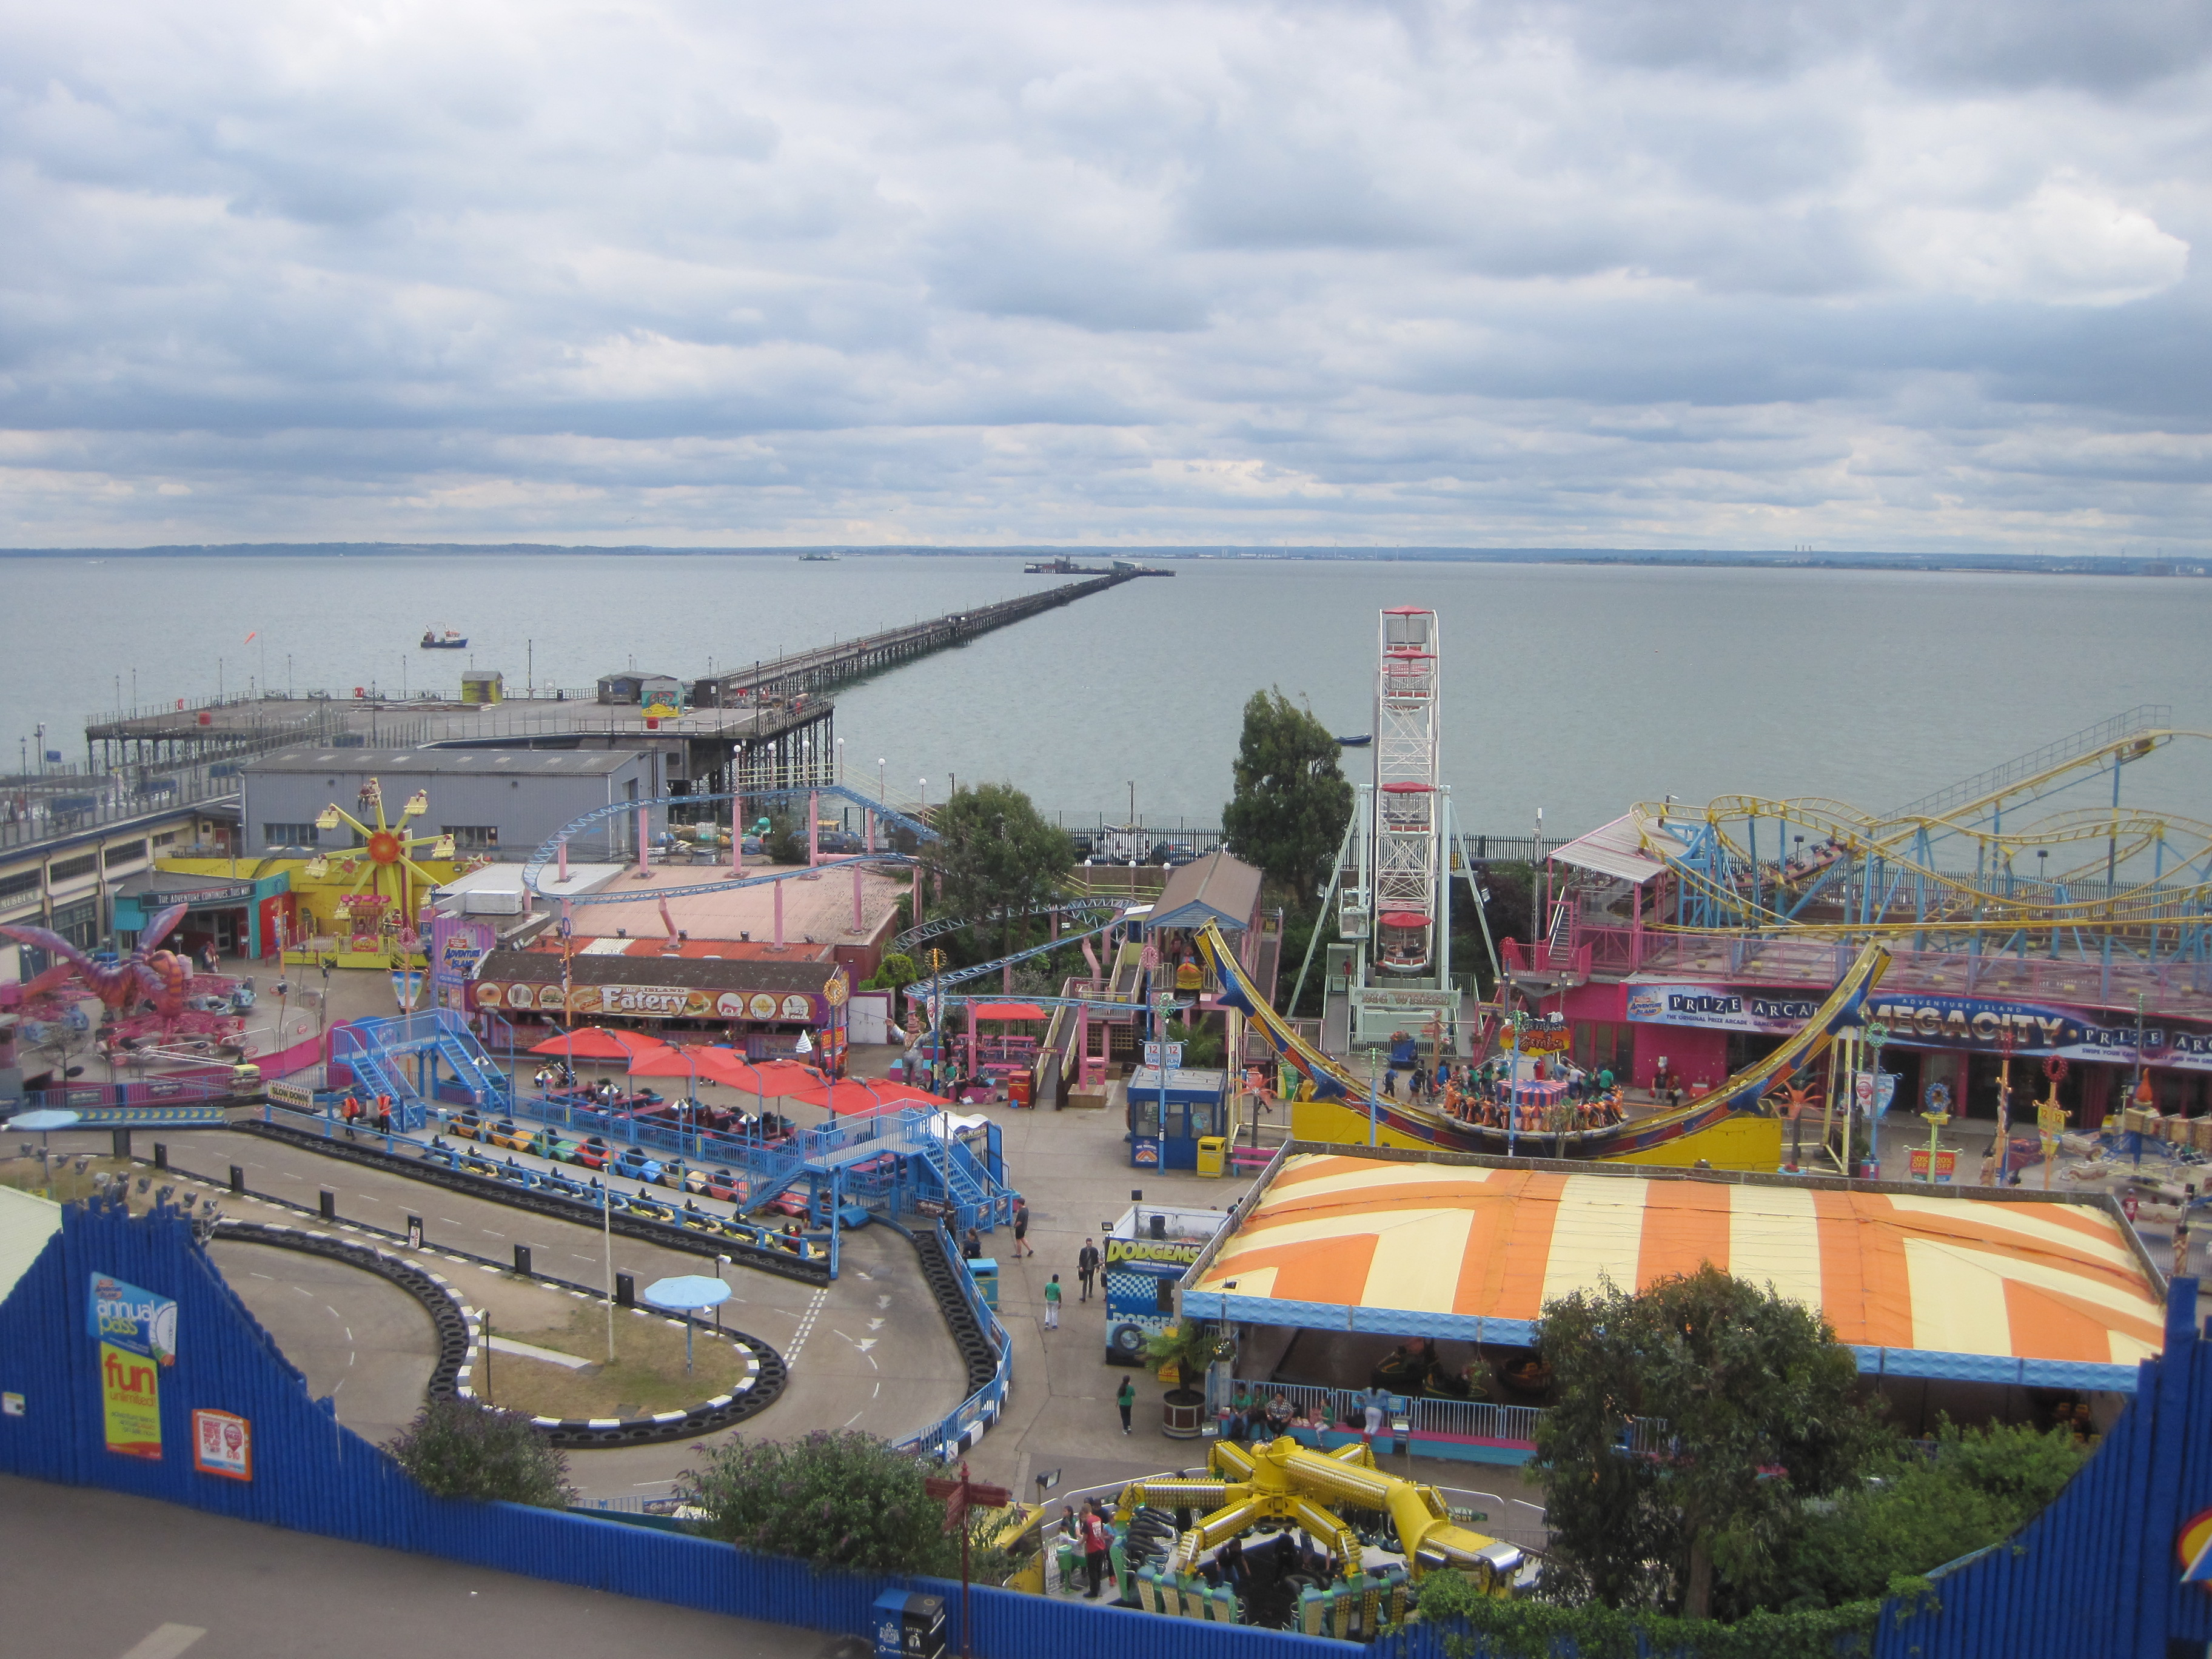 Southend Adventure Island - photo by Juliamaud